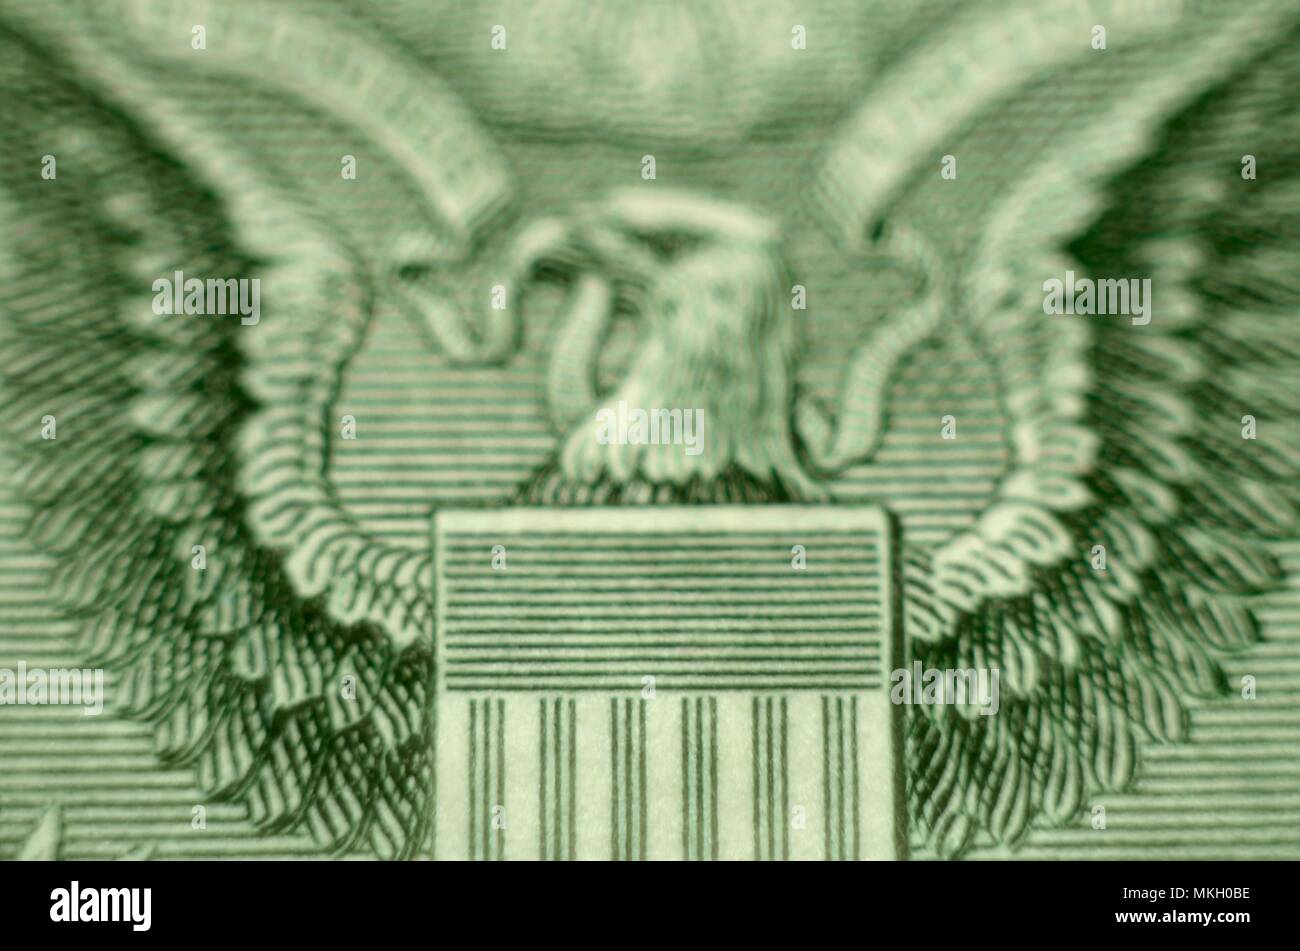 US Dollar Extreme Close-Up Coat of Arms - Stock Image